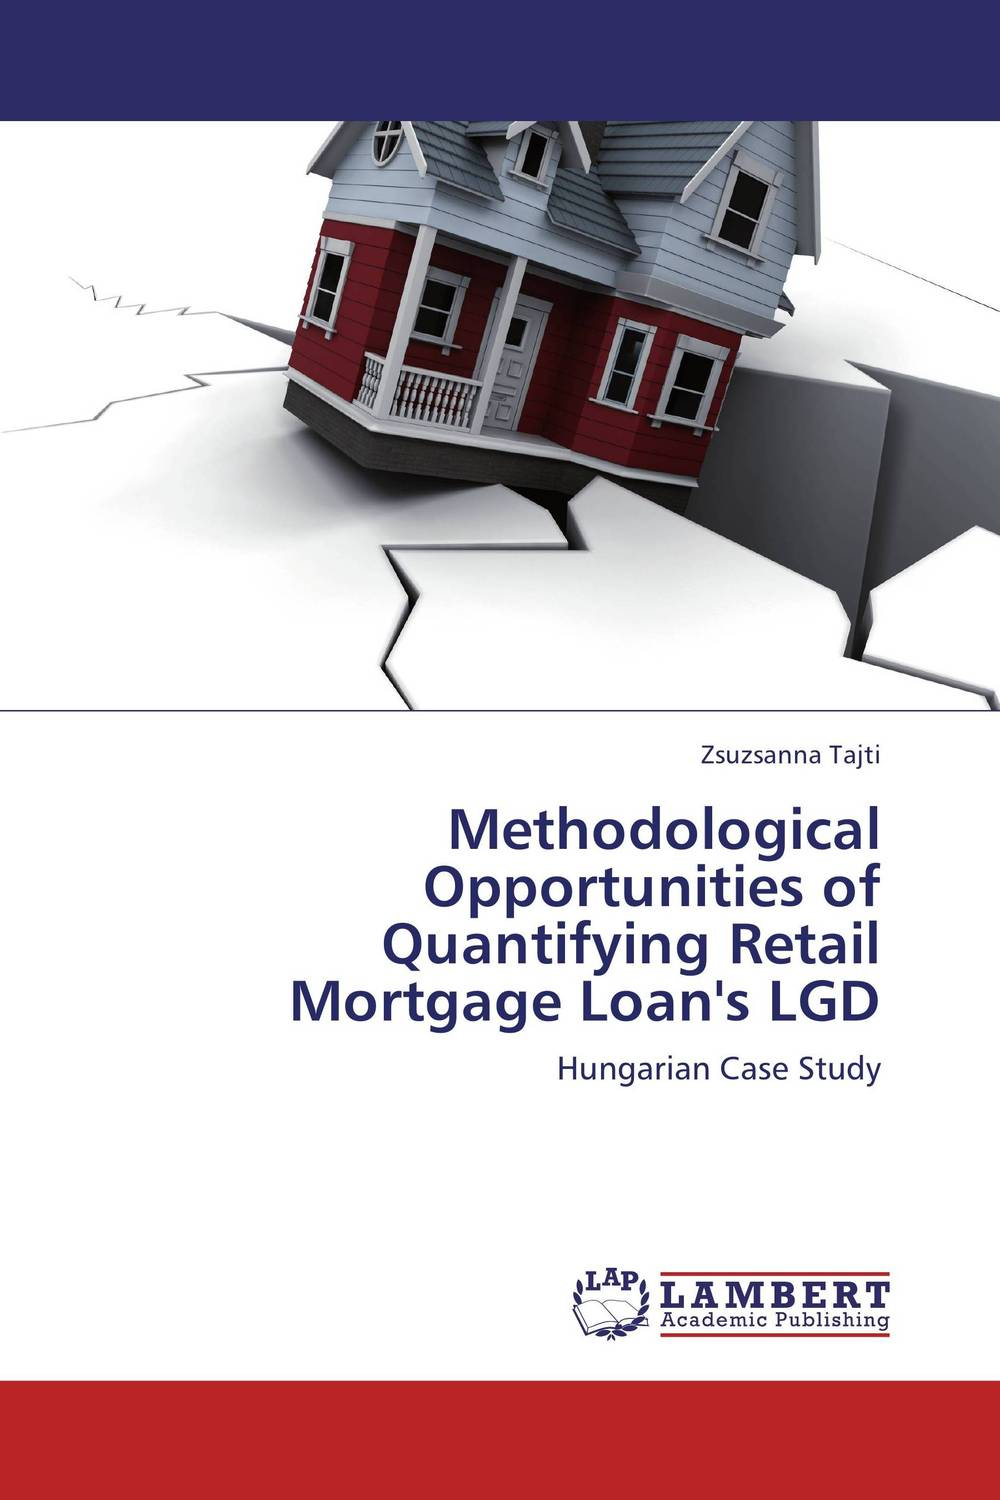 Methodological Opportunities of Quantifying Retail Mortgage Loan's LGD credit and risk analysis by banks